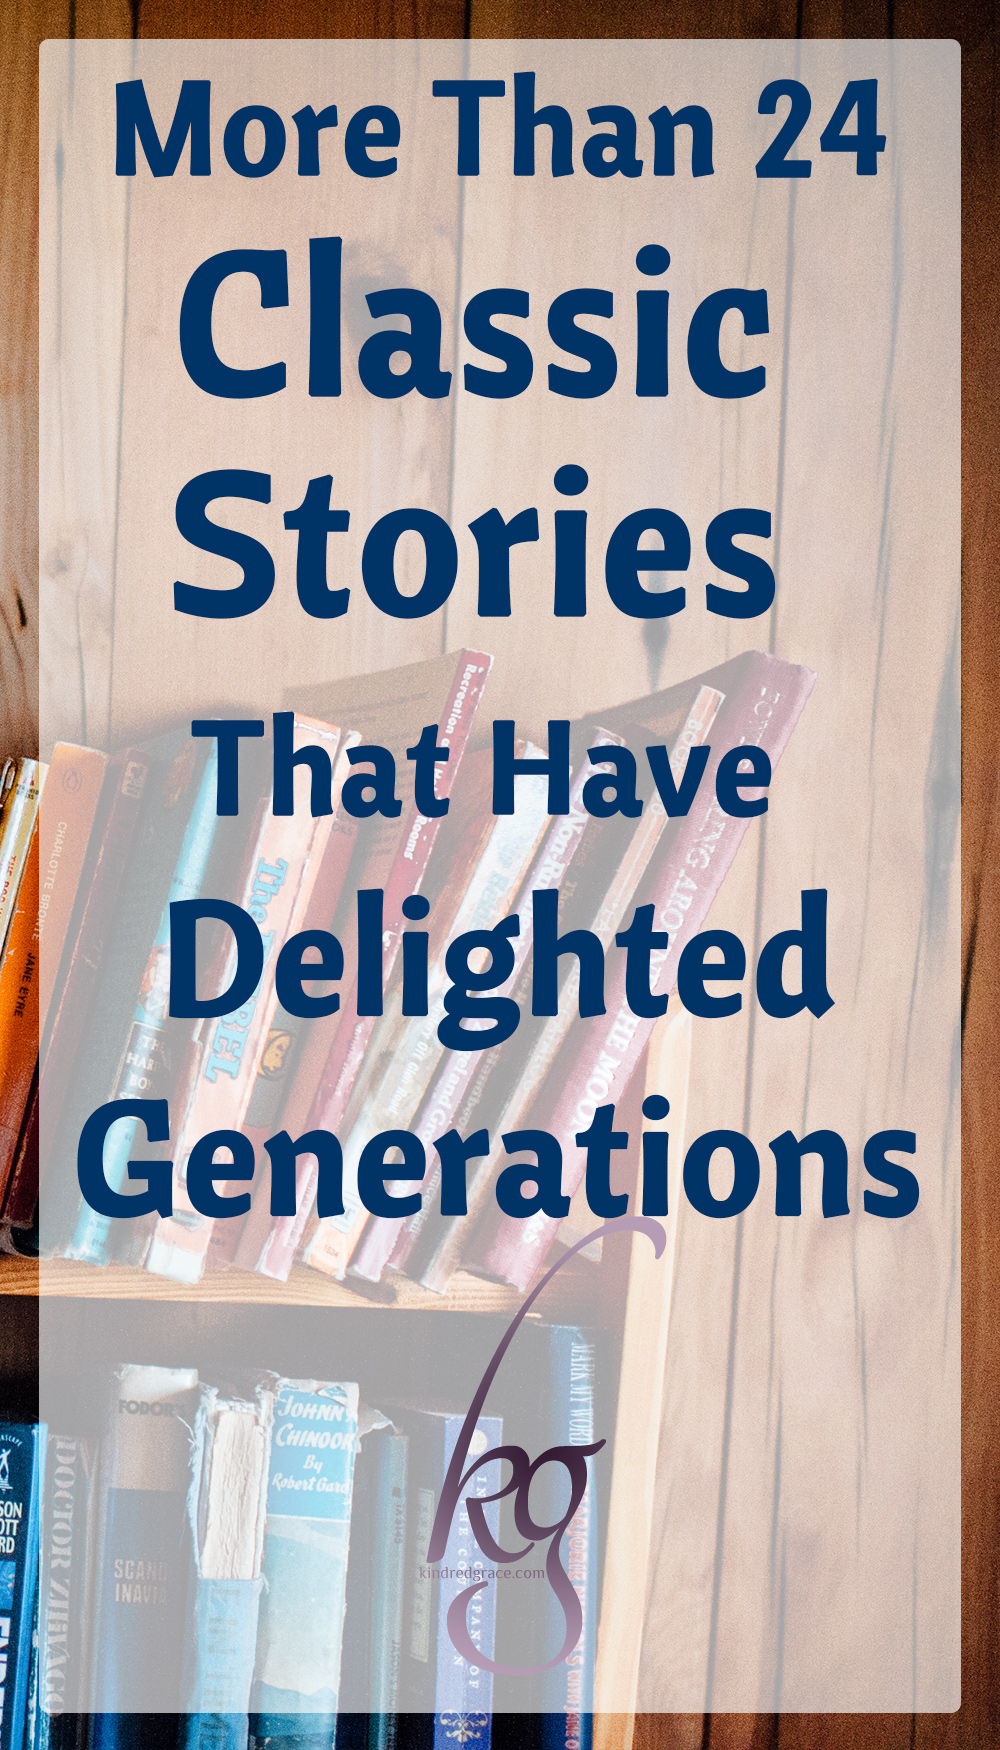 Beautiful tales, old and new, that celebrate old-fashioned values and have entertained and delighted four generations of our family. via @KindredGrace